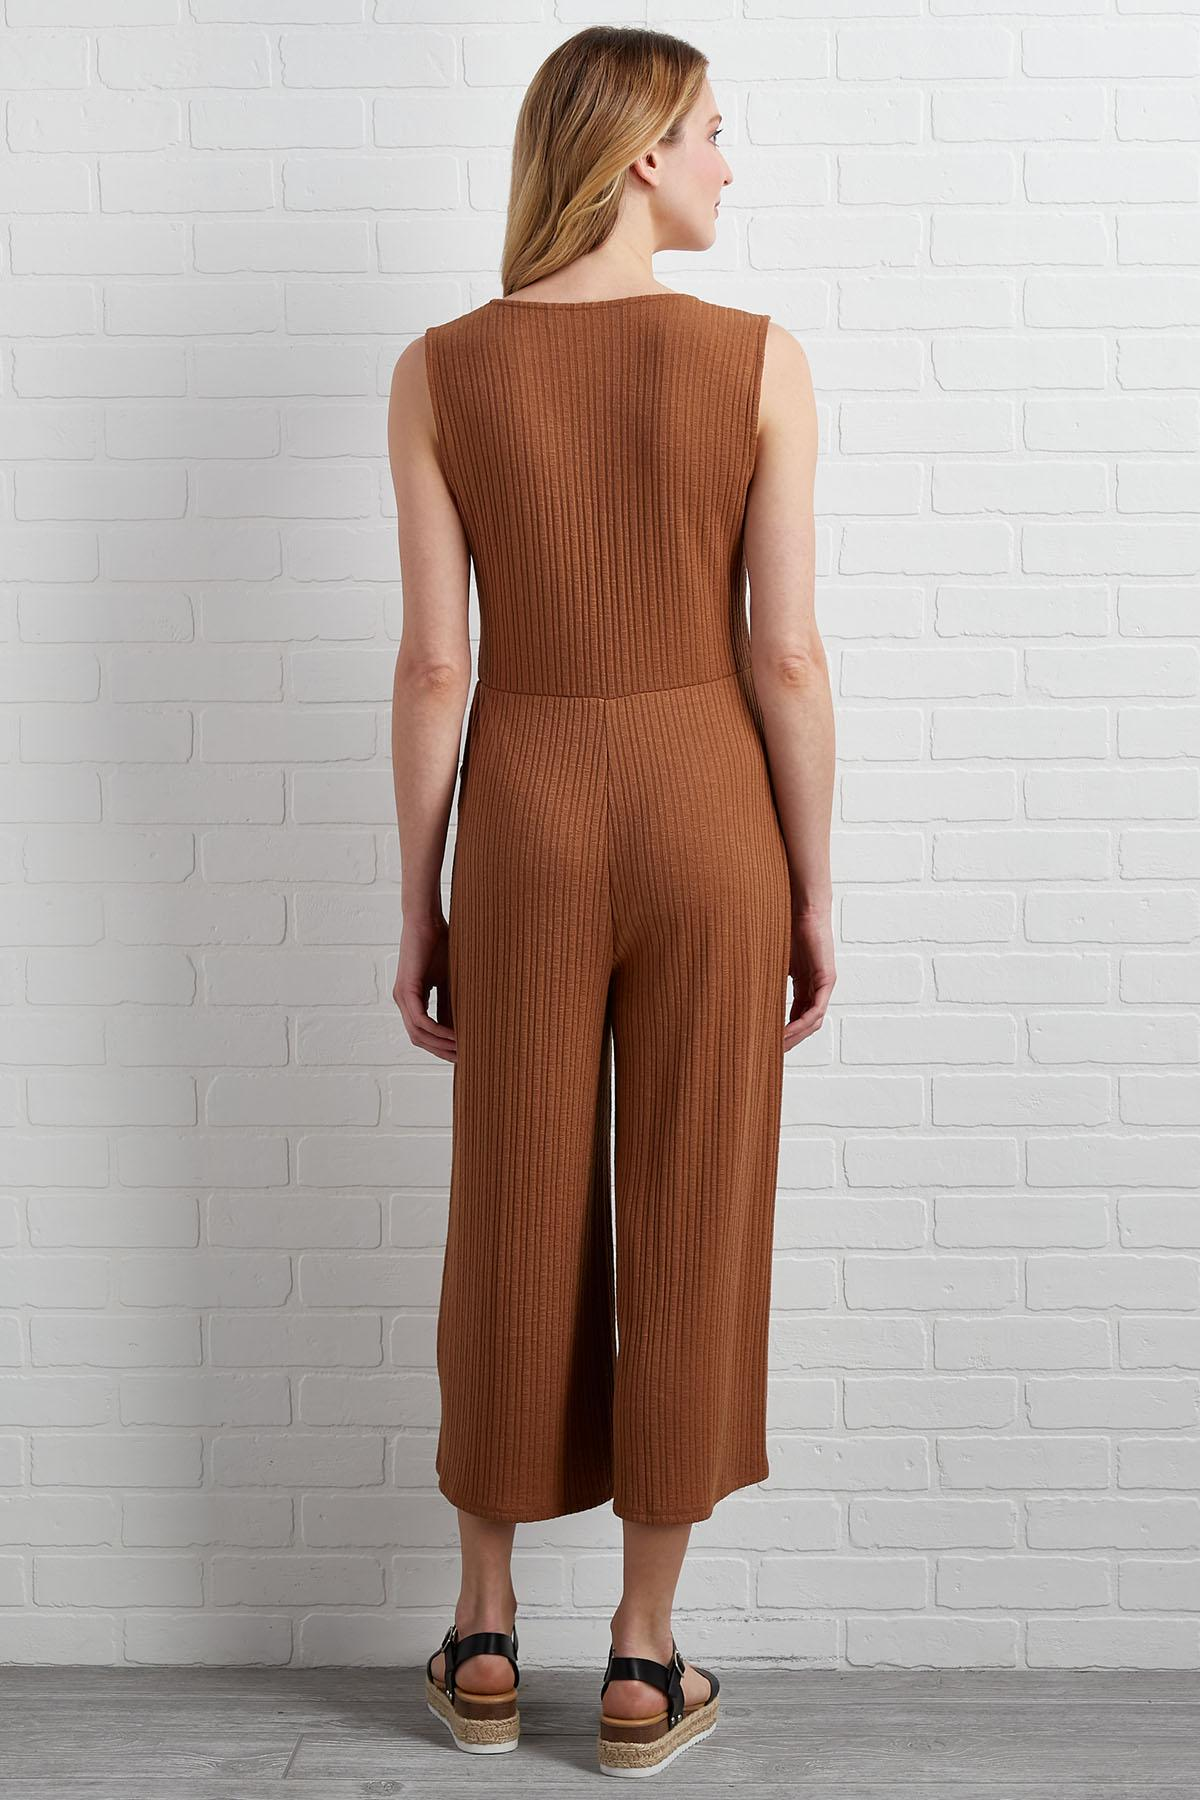 Did You Get My Textured Jumpsuit